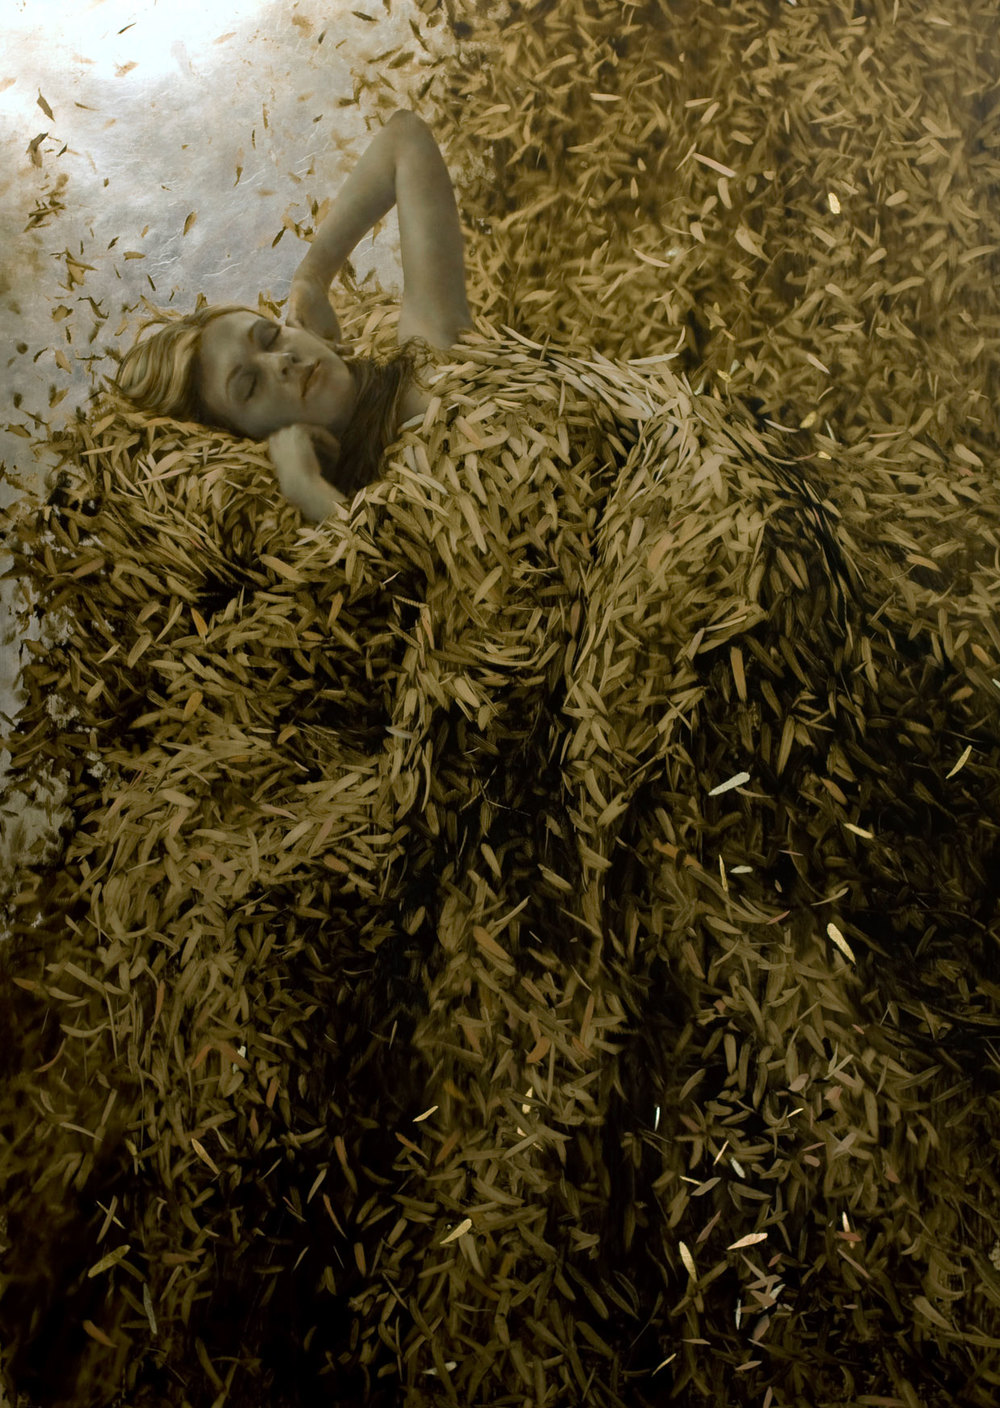 Sixth Sleep.   47 x 31 inches.  Oil, gold and silver leaf on linen.  Private collection.